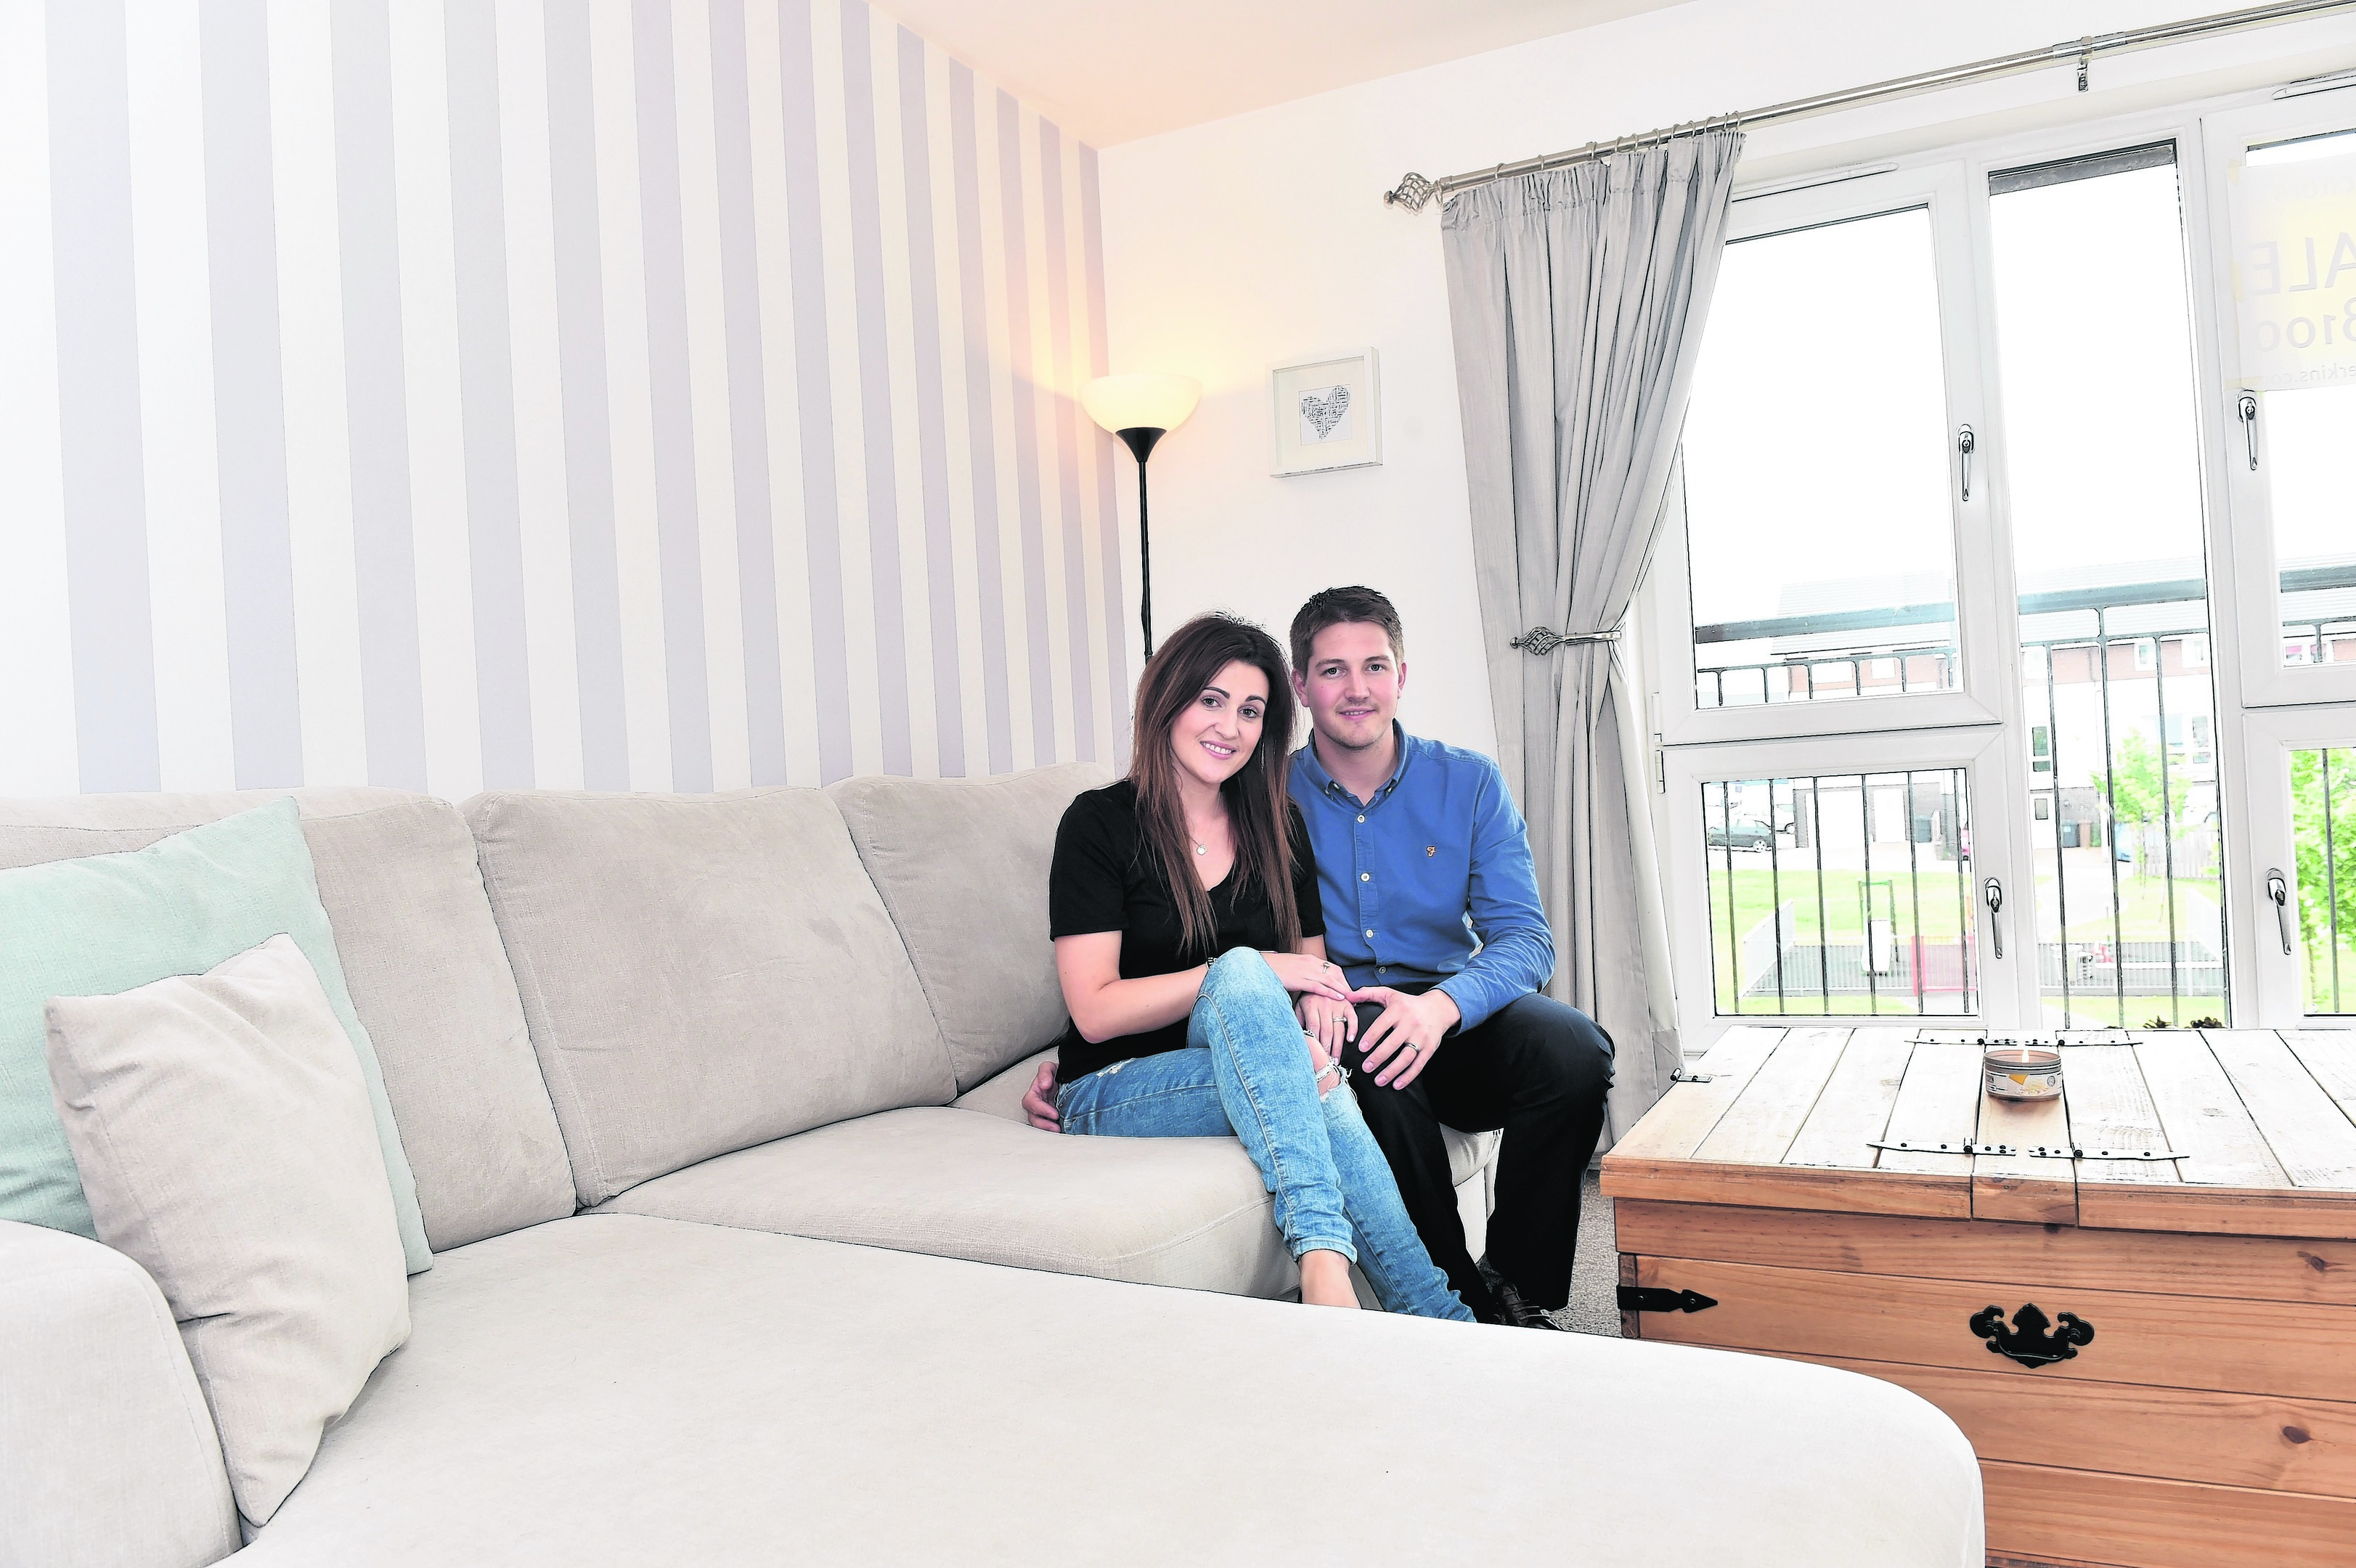 Victoria and Stuart Chalmers at their home, 28 Goodhope Park, Aberdeen.